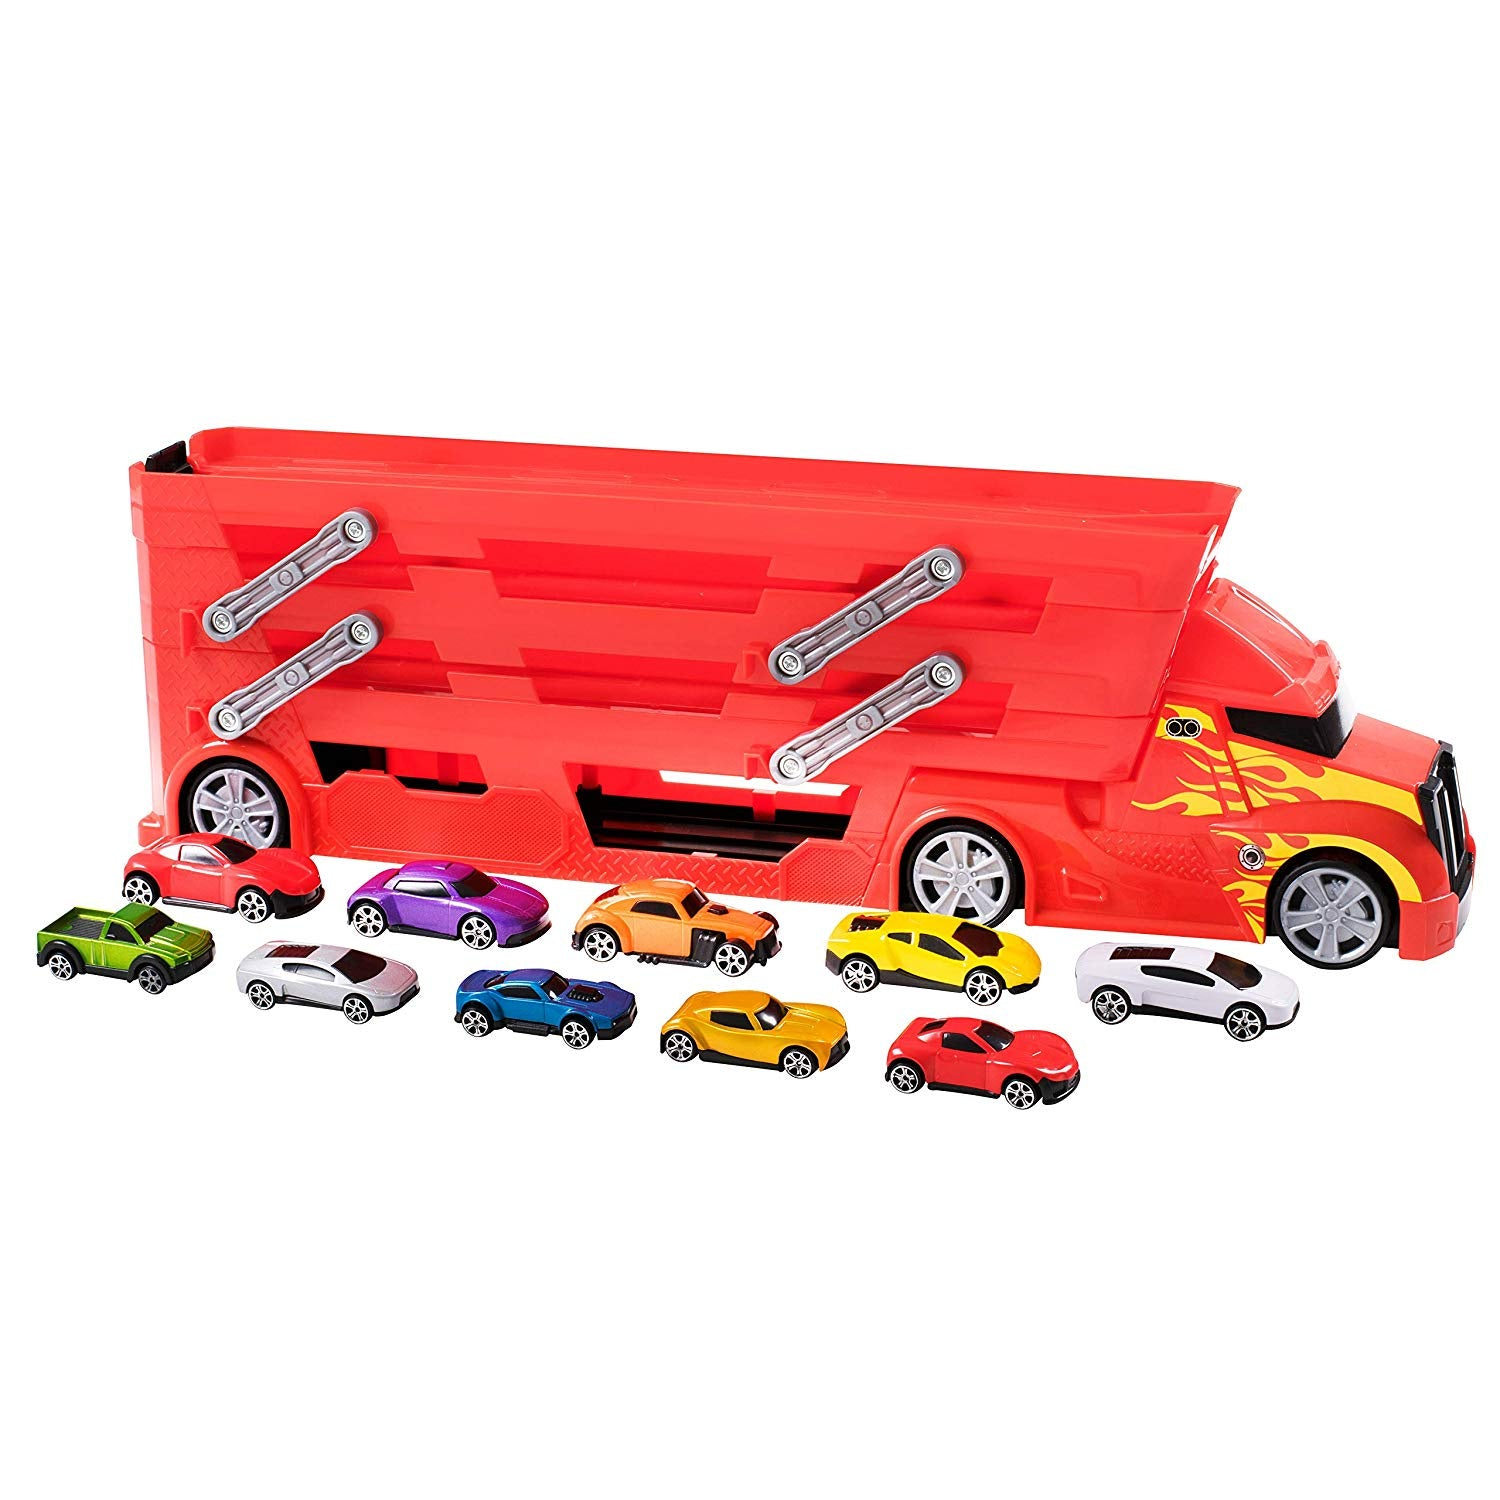 Teamsterz Car Transporter Launcher